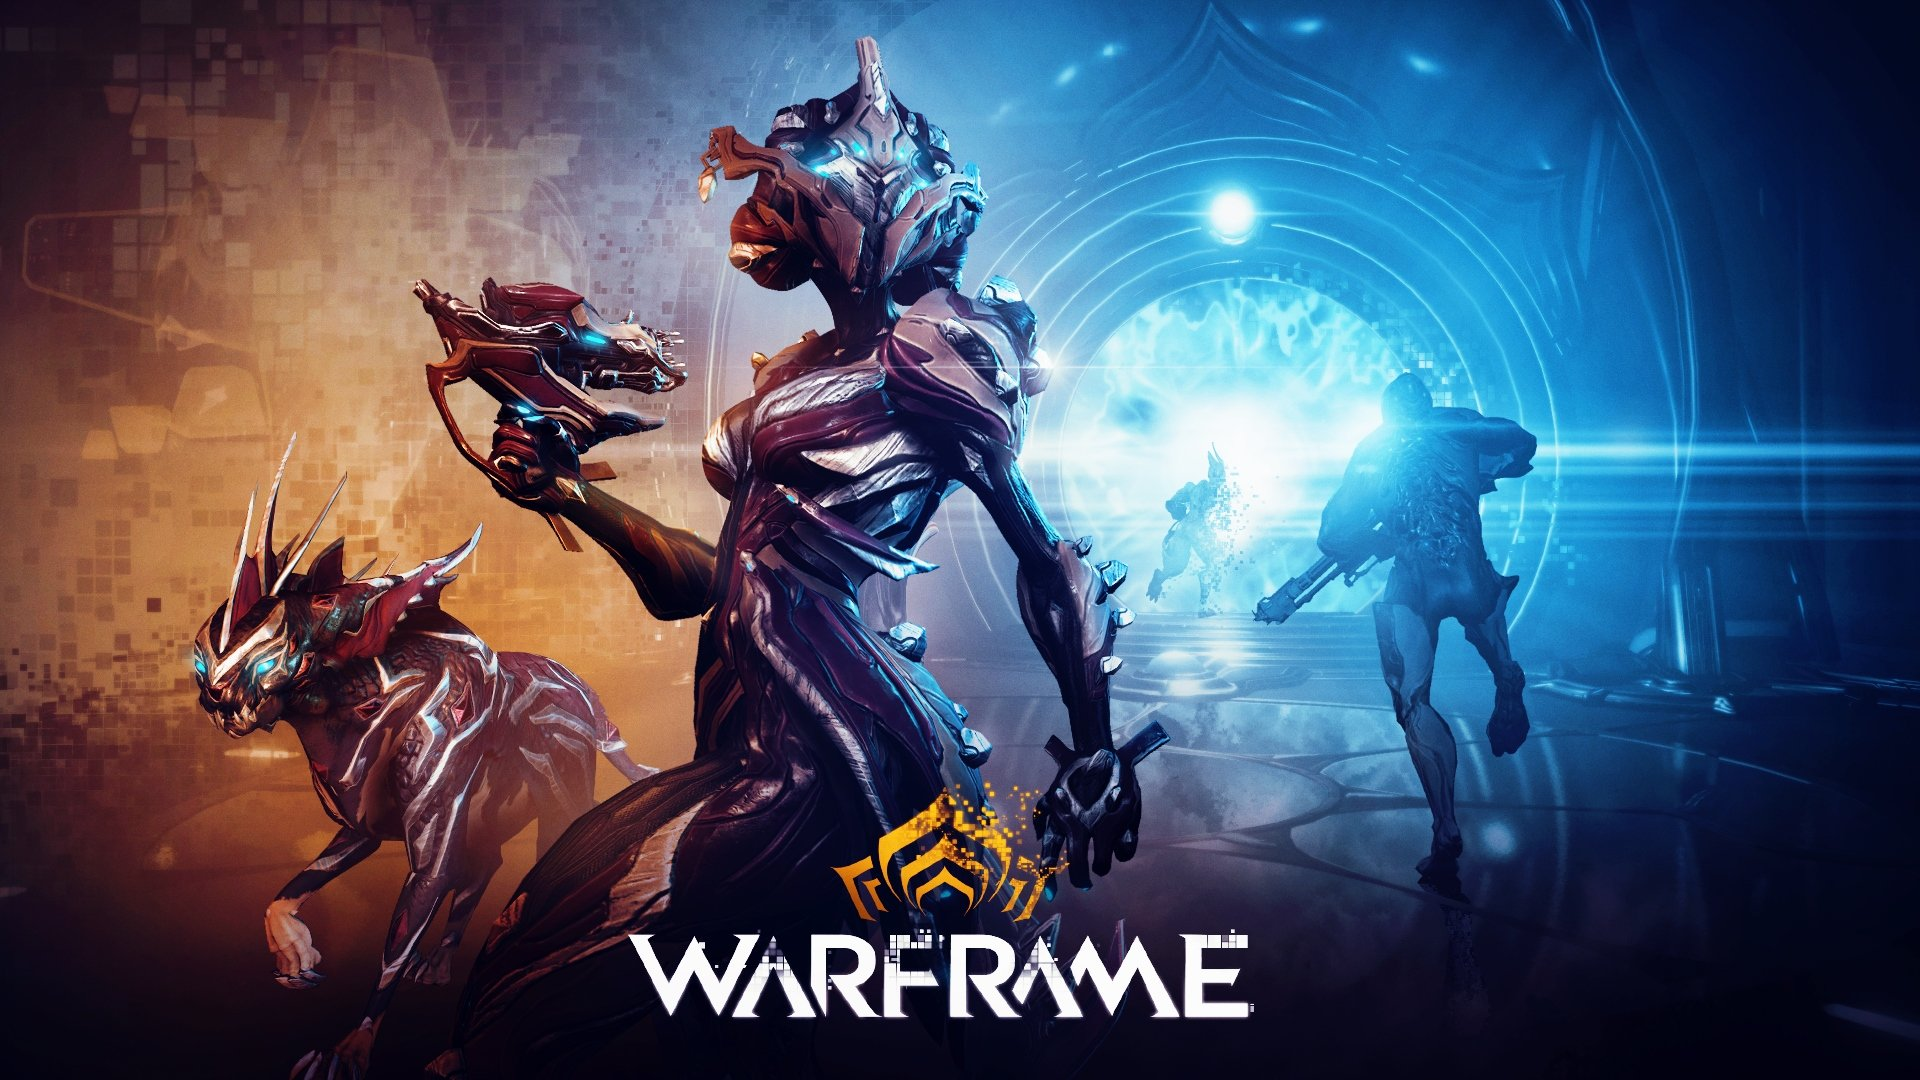 Warframe's newest Twitch Prime bundle adds new weapons and